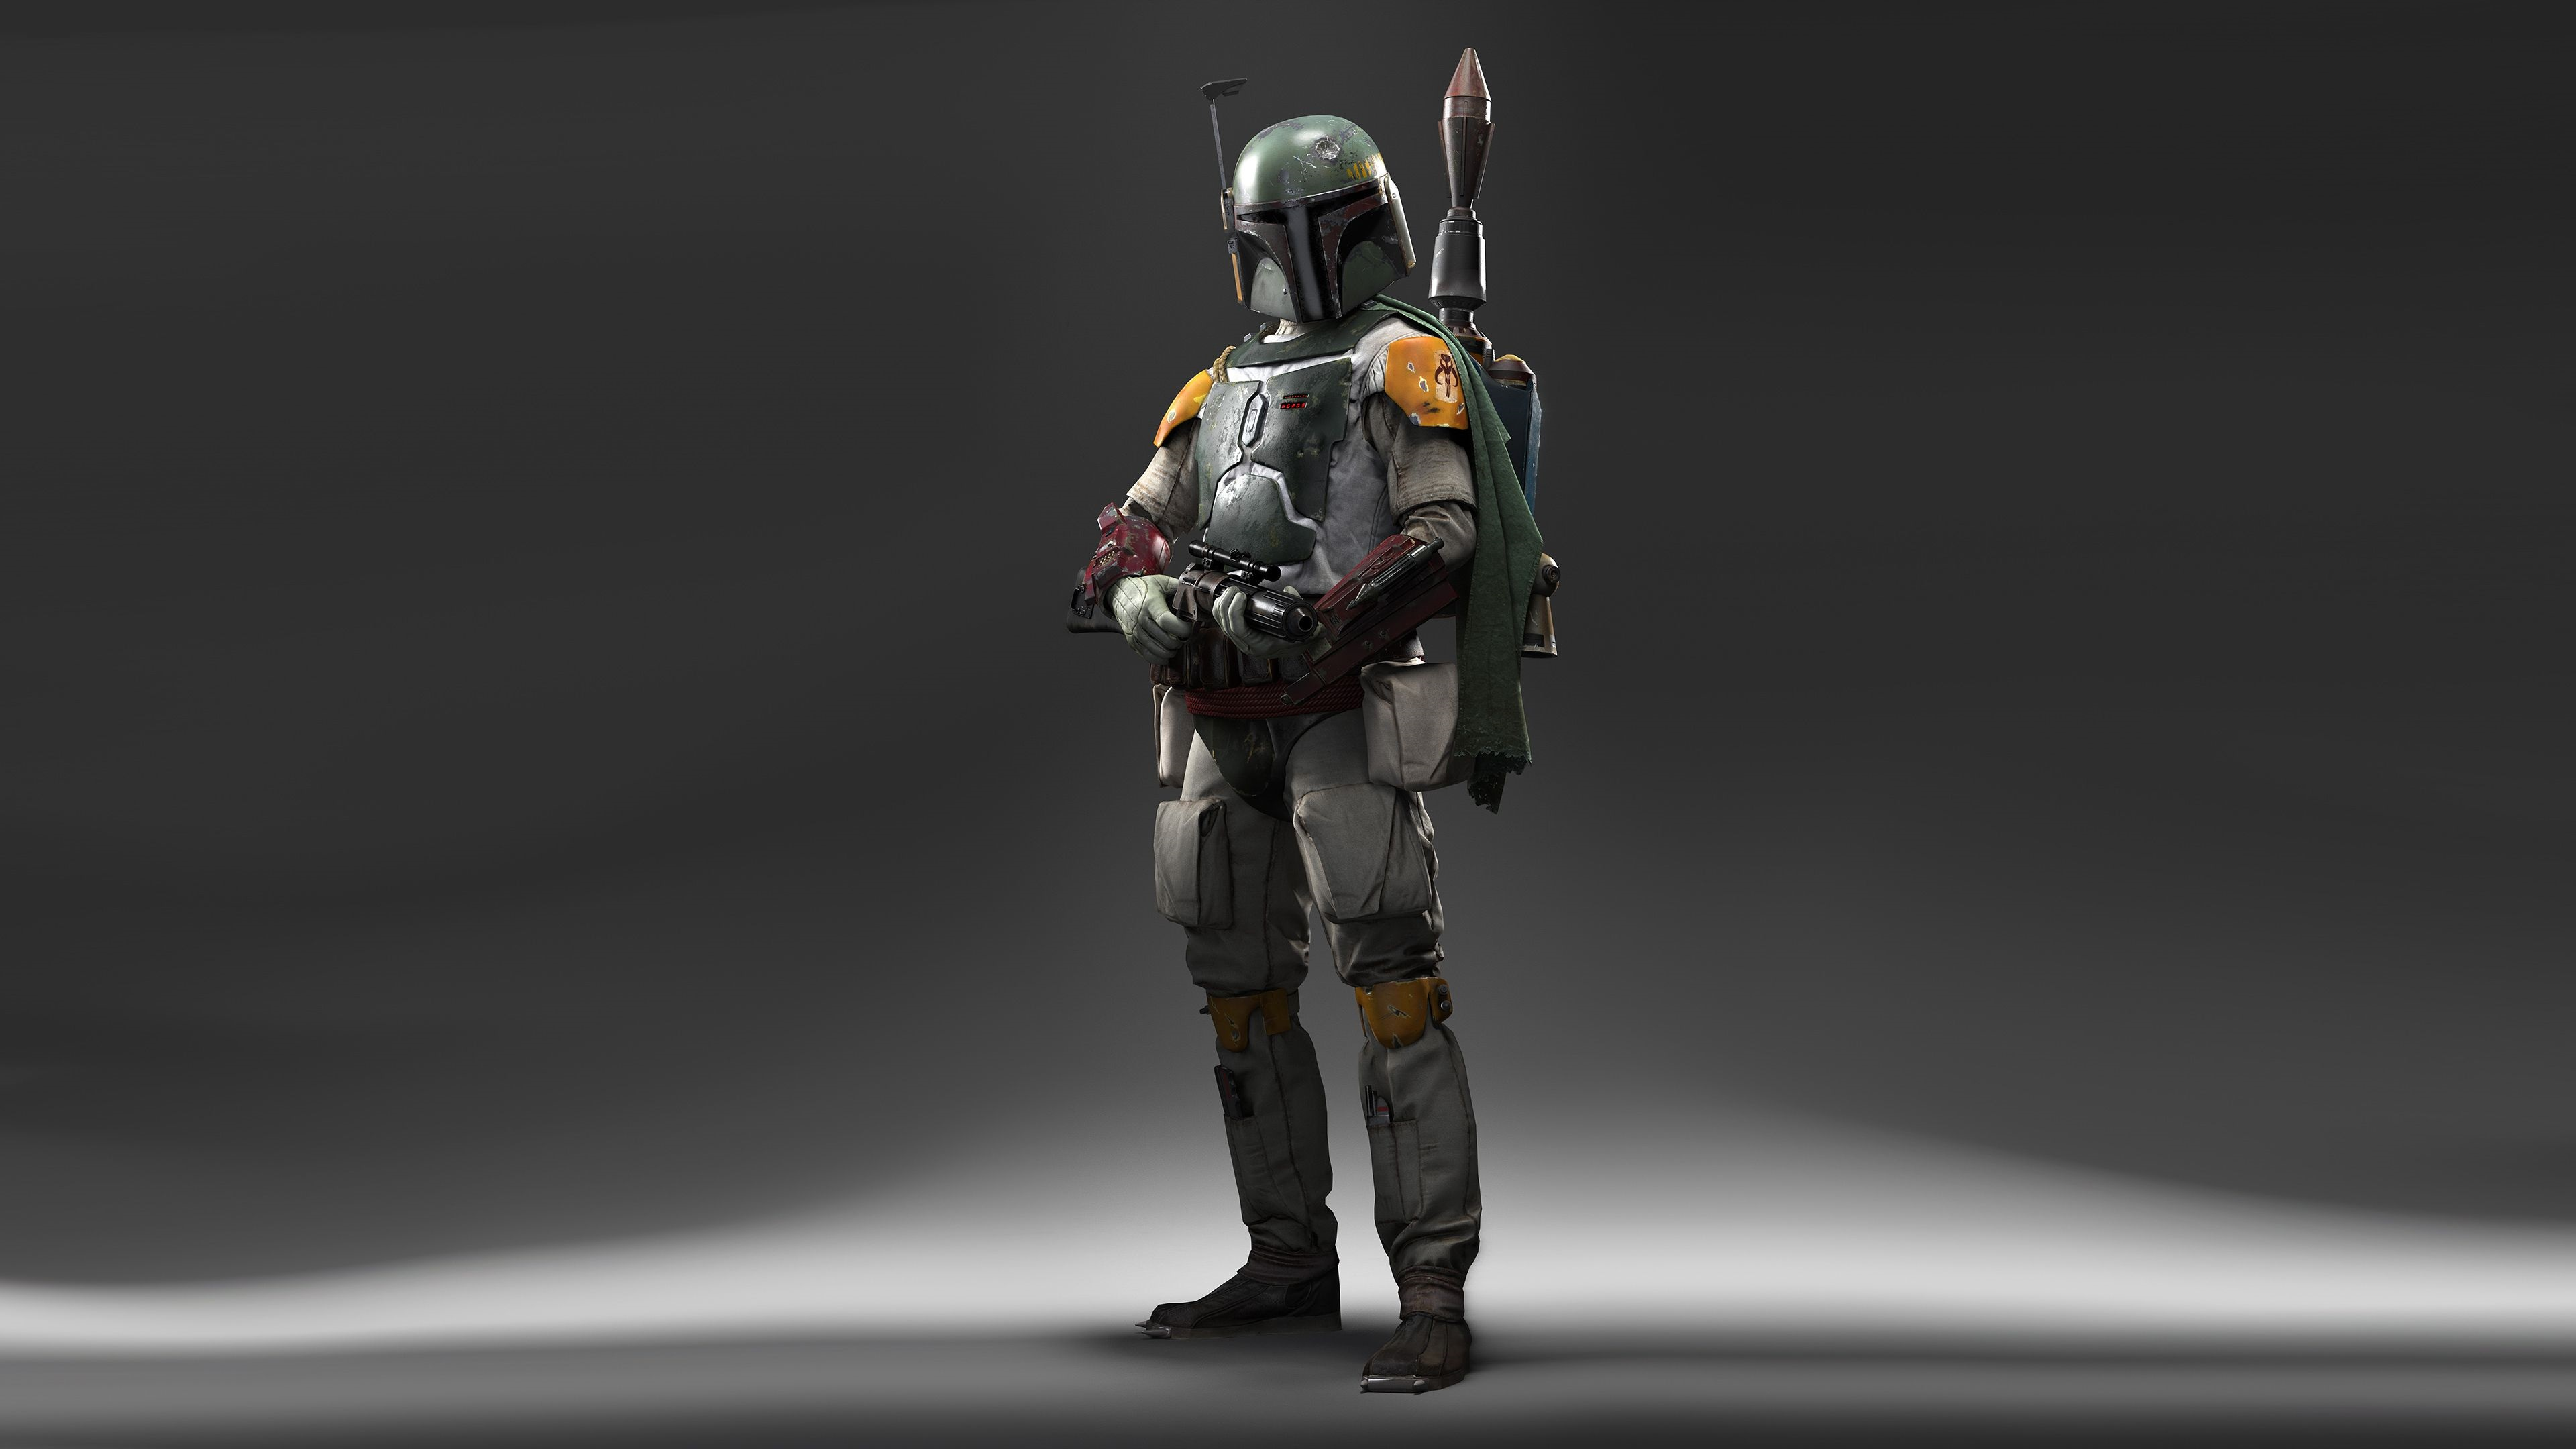 Boba Fett Star Wars 4k